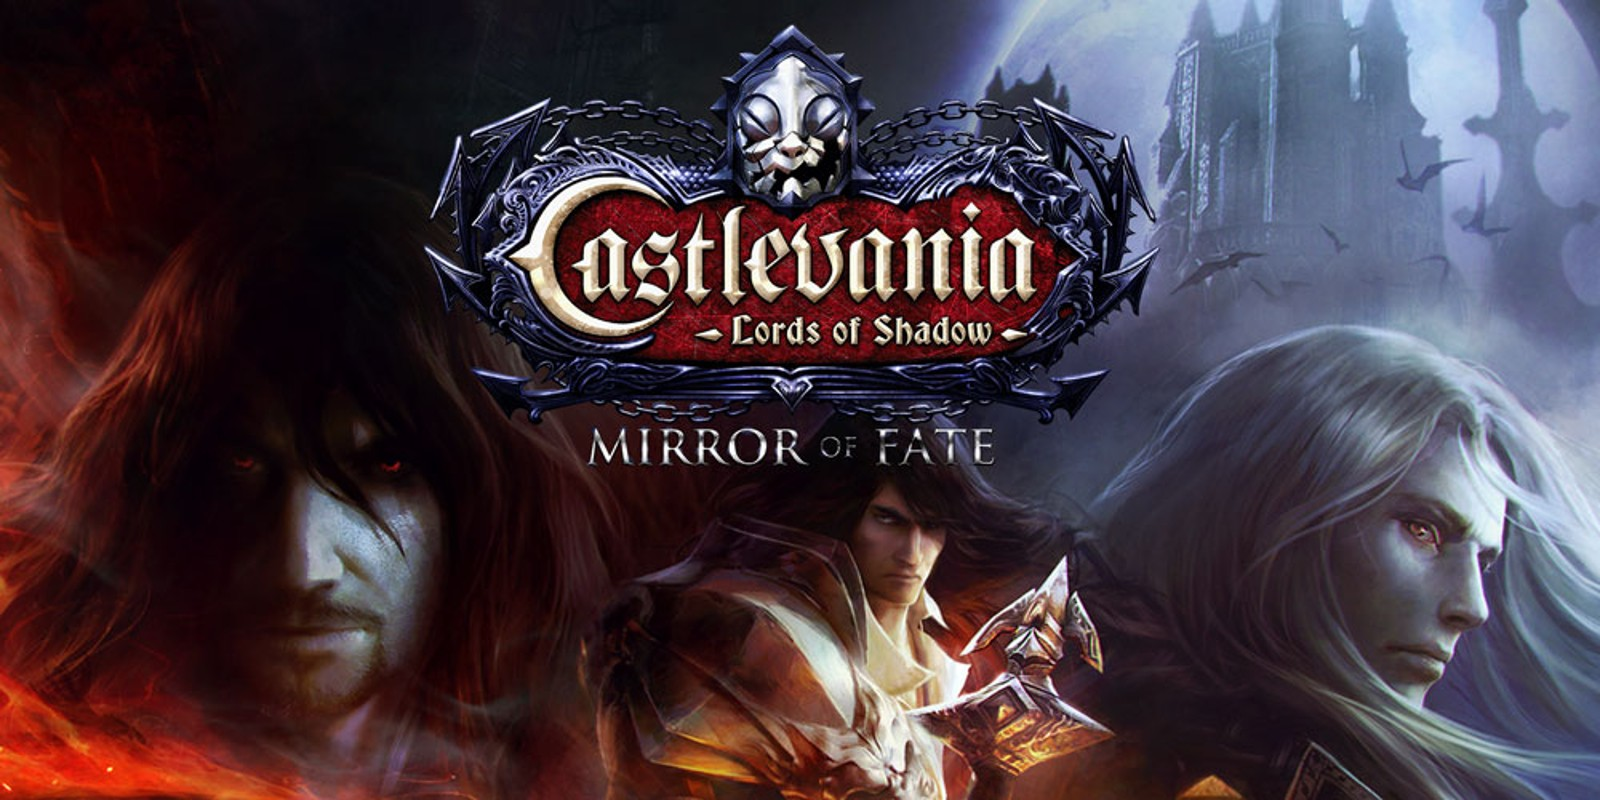 castlevania lords of shadow 3 pc game free download